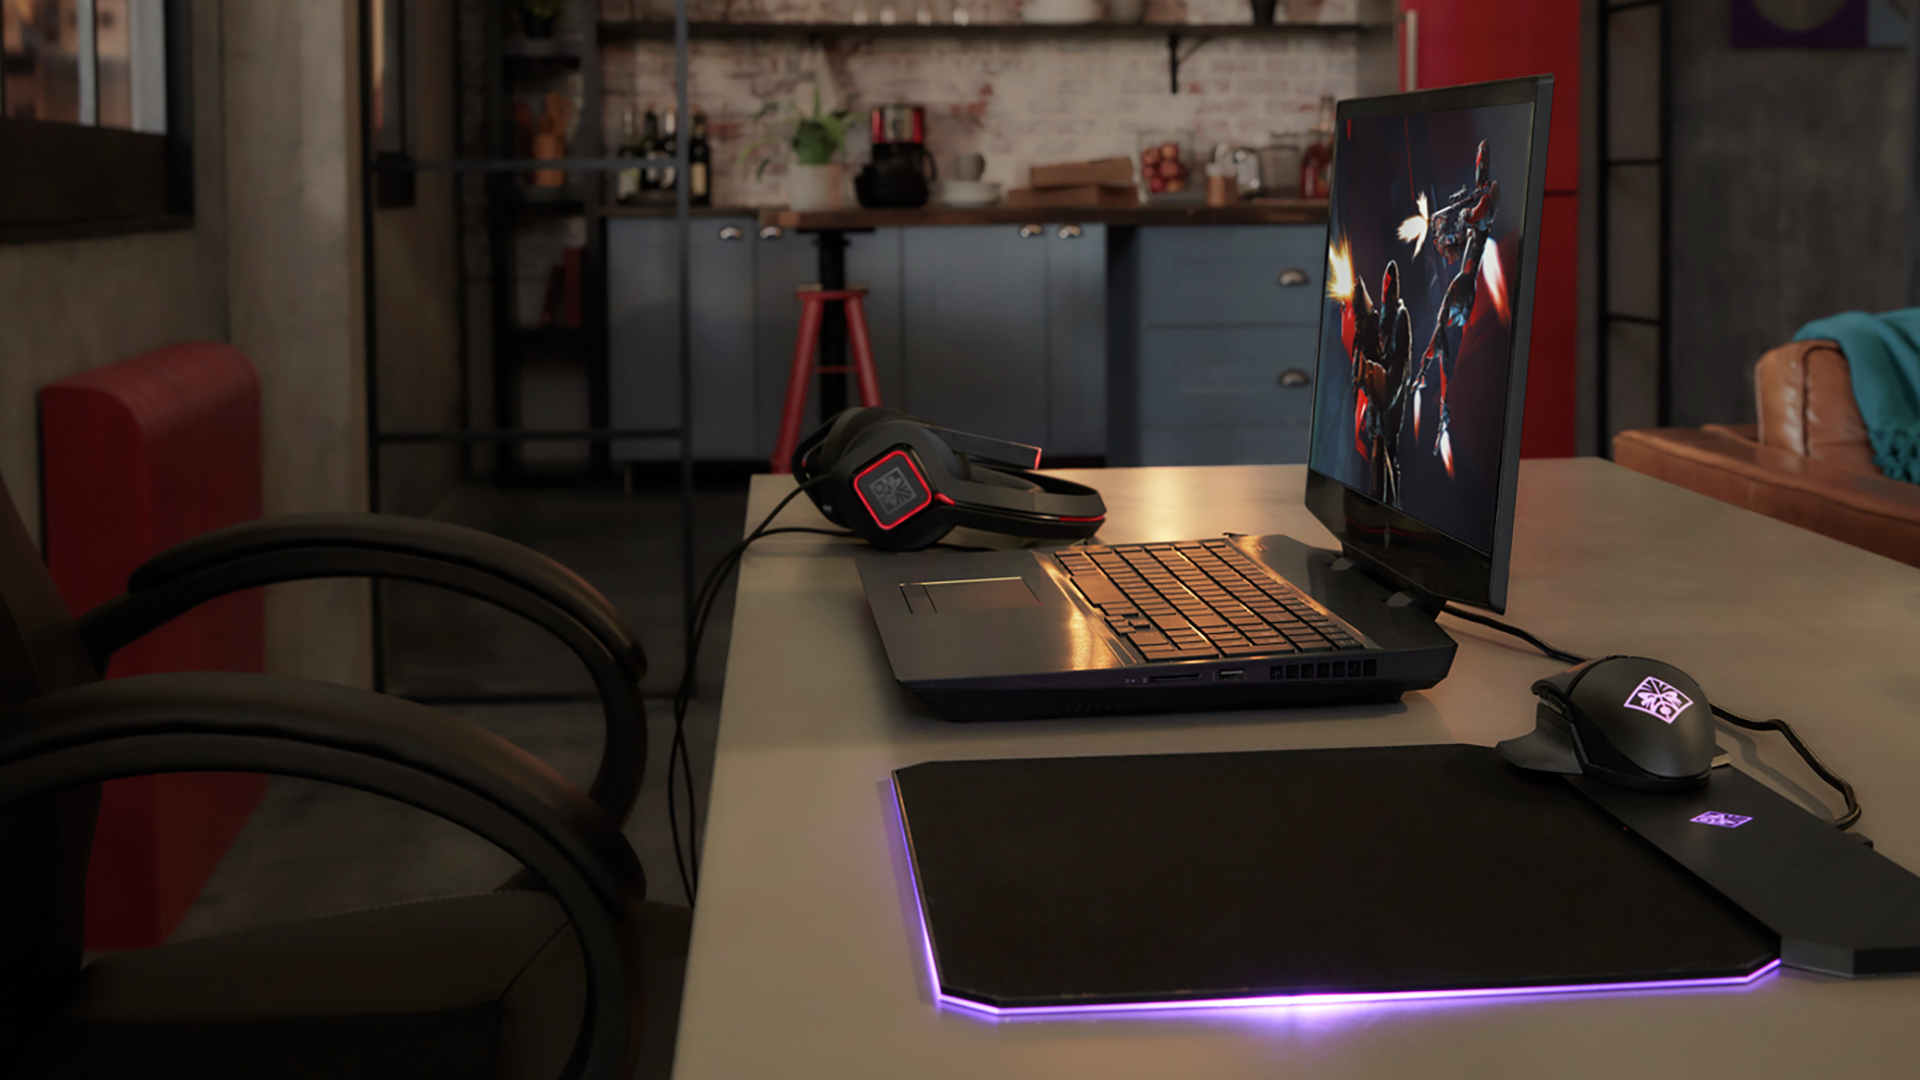 The best HP deals on gaming hardware from its July 4 sale